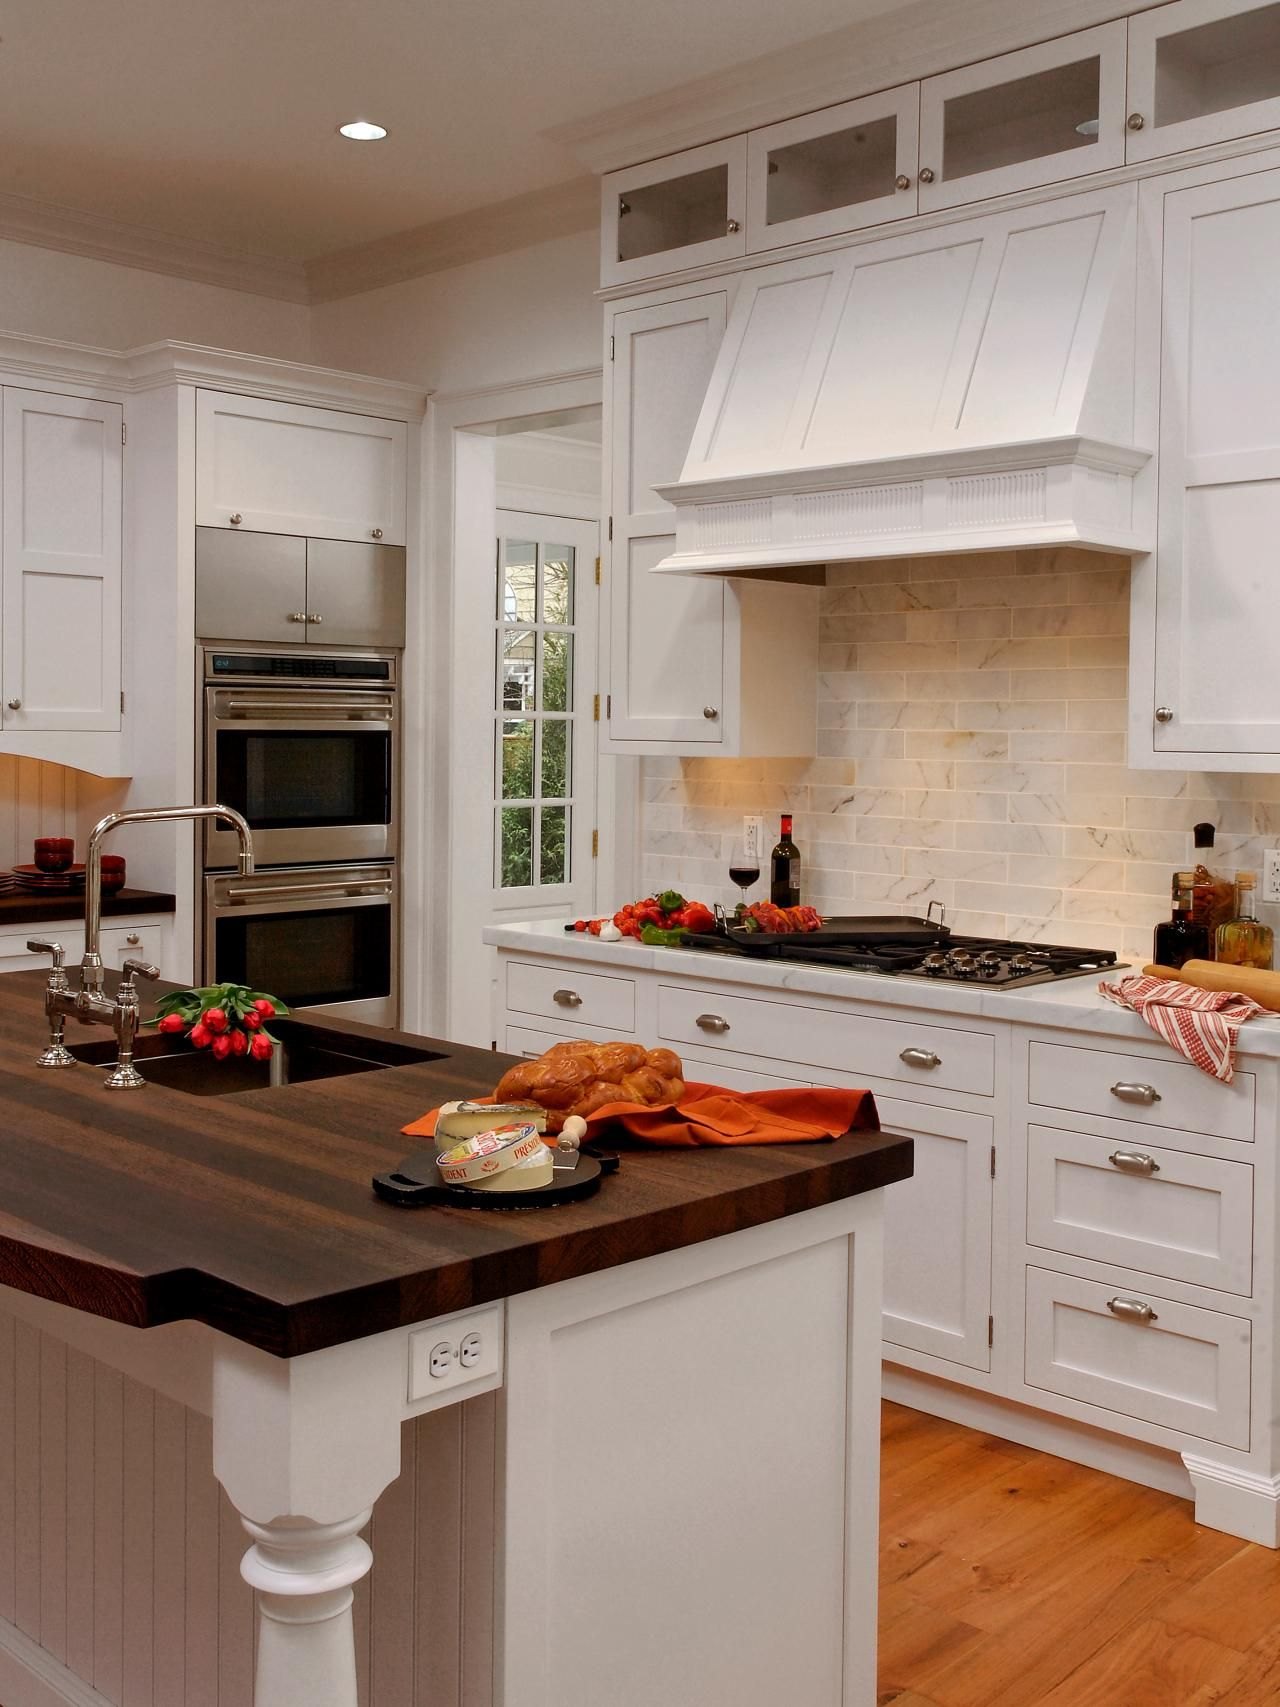 kitchen islands: beautiful, functional design options | kitchens